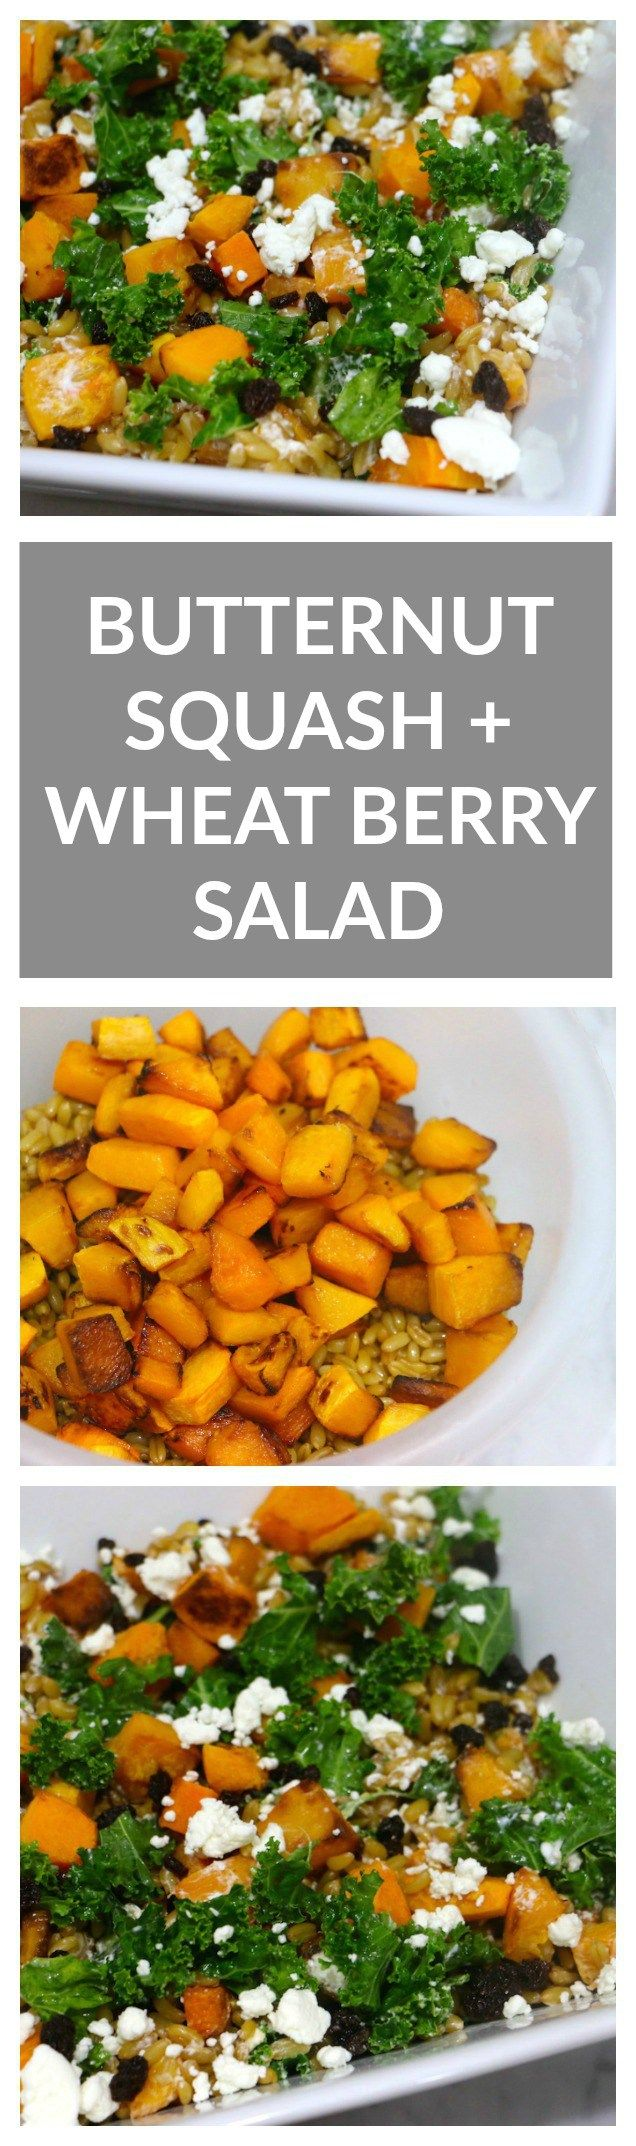 Butternut Squash, Goat Cheese + Wheat Berry Salad. The perfect fall salad combining sweet butternut squash and currants, hearty wheat berries, and creamy goat cheese. Tossed with massaged kale for a mega dose of nutrients!